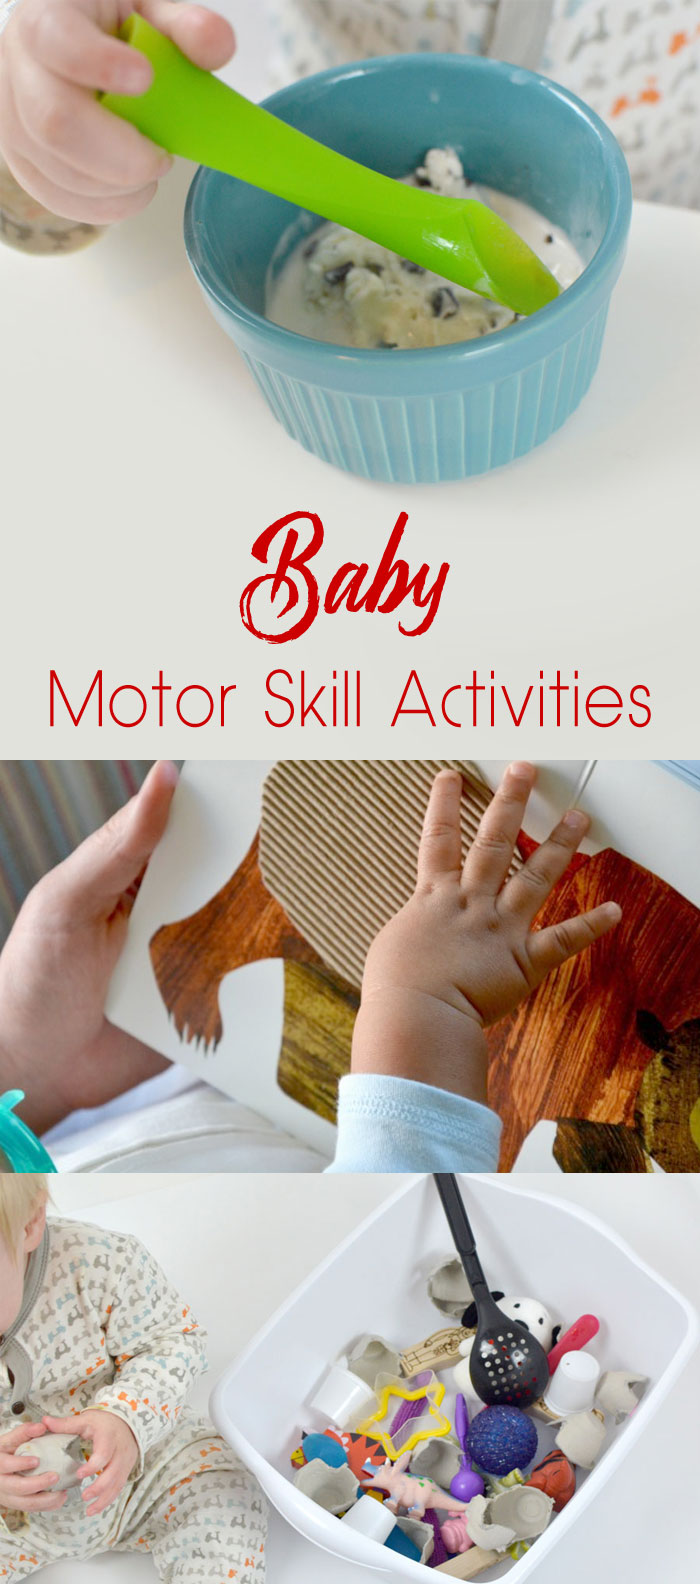 Baby Motor Skill Activities - Mommy Scene